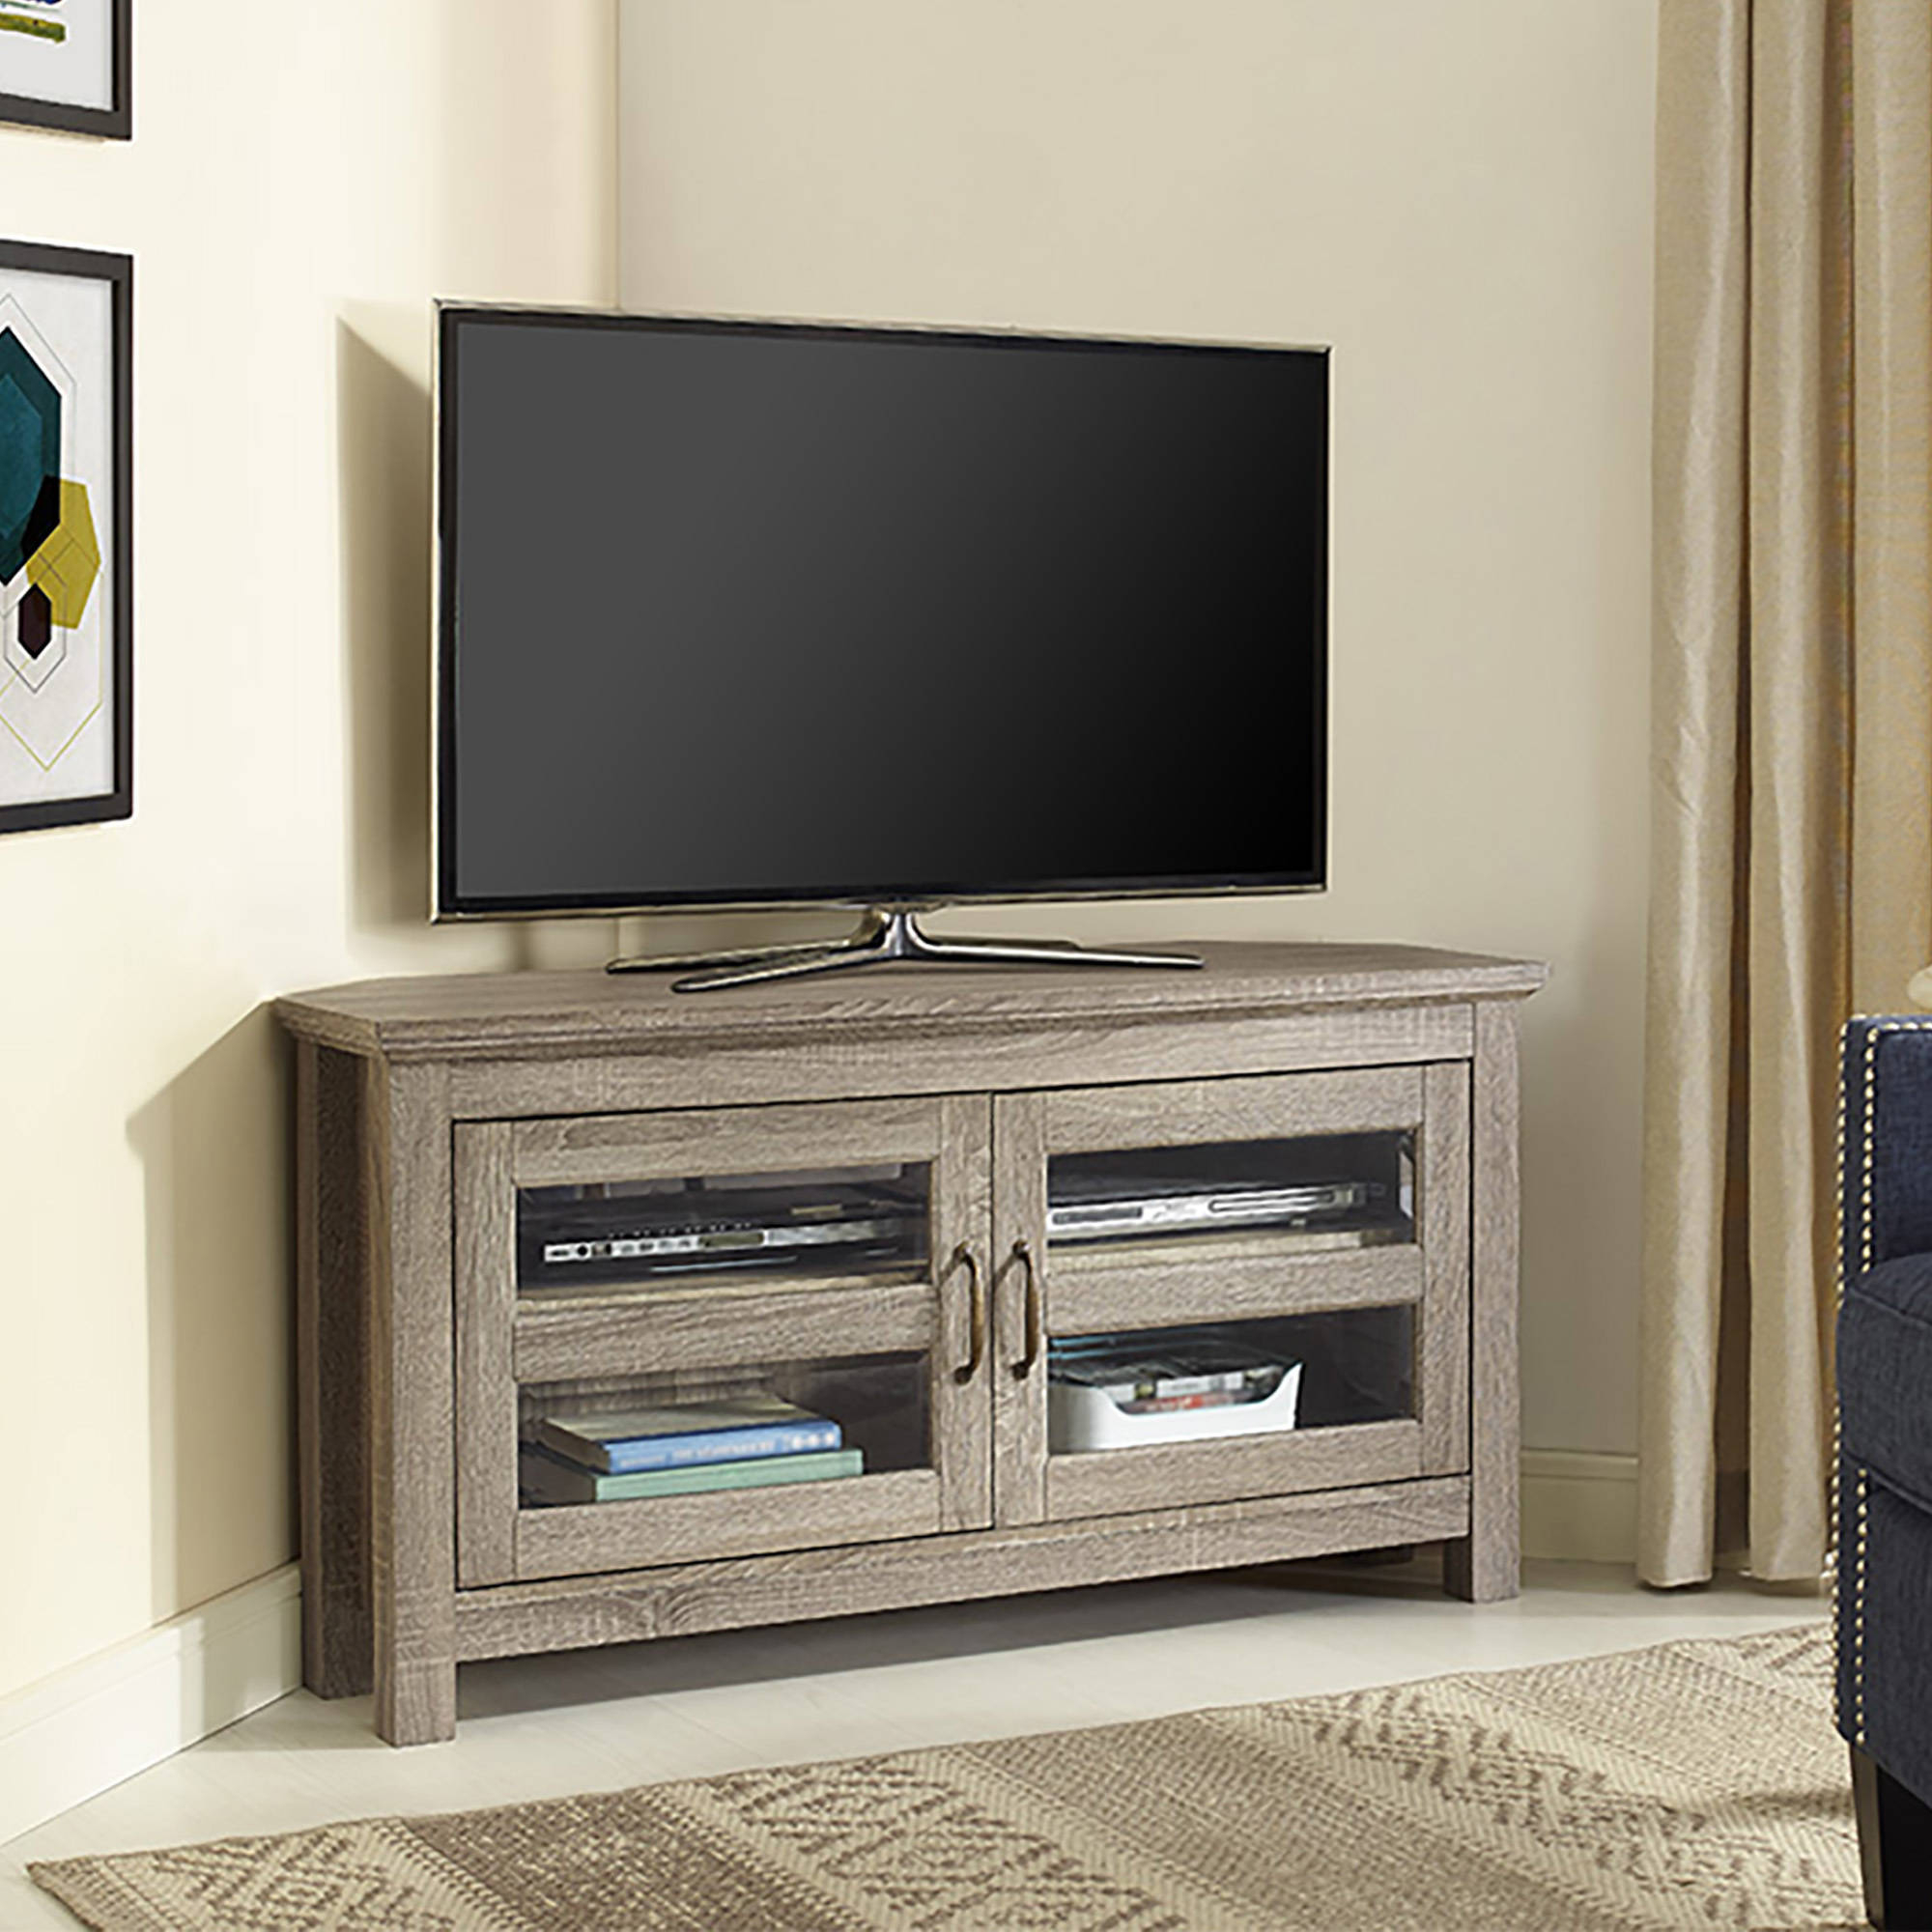 Most Current Corner Tv Stands For 46 Inch Flat Screen In Universal Tv Base Walmart We Furniture 70 Wood Stand Walker Edison (View 5 of 20)